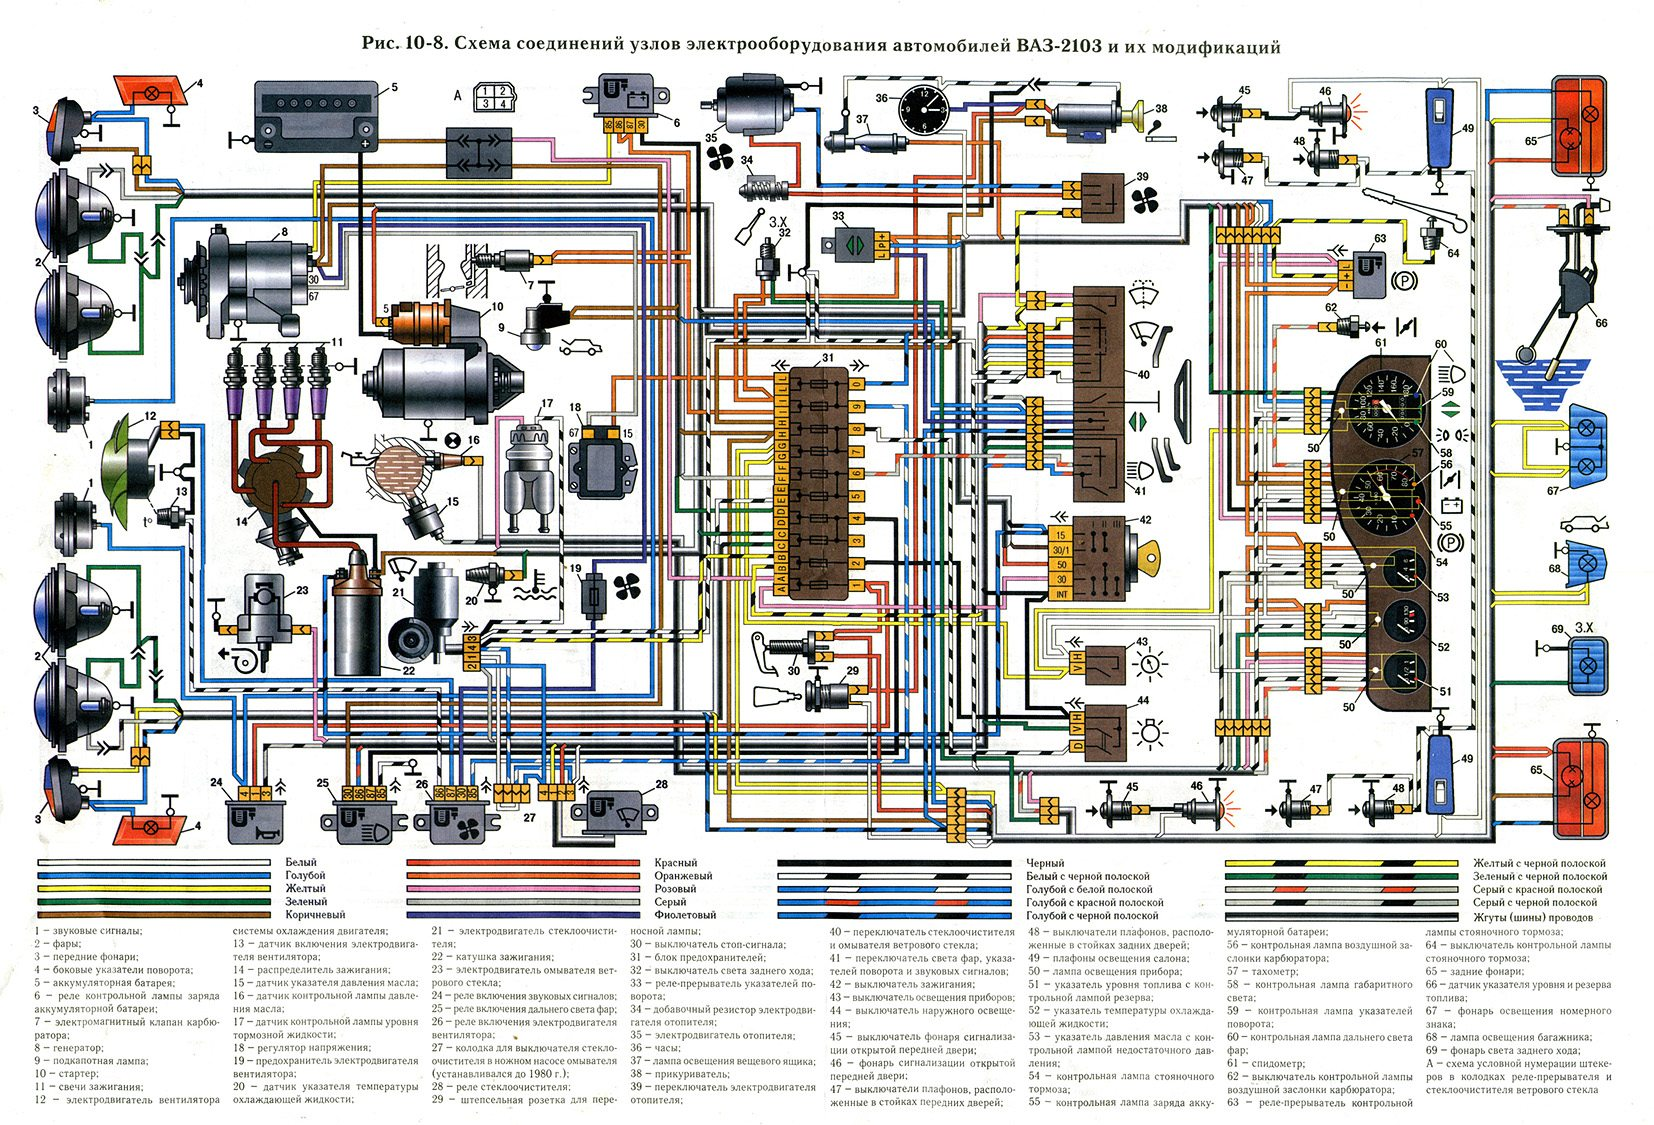 Read likewise CB4l 18122 further 1968 Mustang Steering Column Diagram 5c7fa58c6ca23310 additionally 188530 Scalable Color Gtv6 Wiring Diagram Part 1 Lighting besides Schema Electrique Xsara Versailles 2212. on fiat 124 wiring diagram